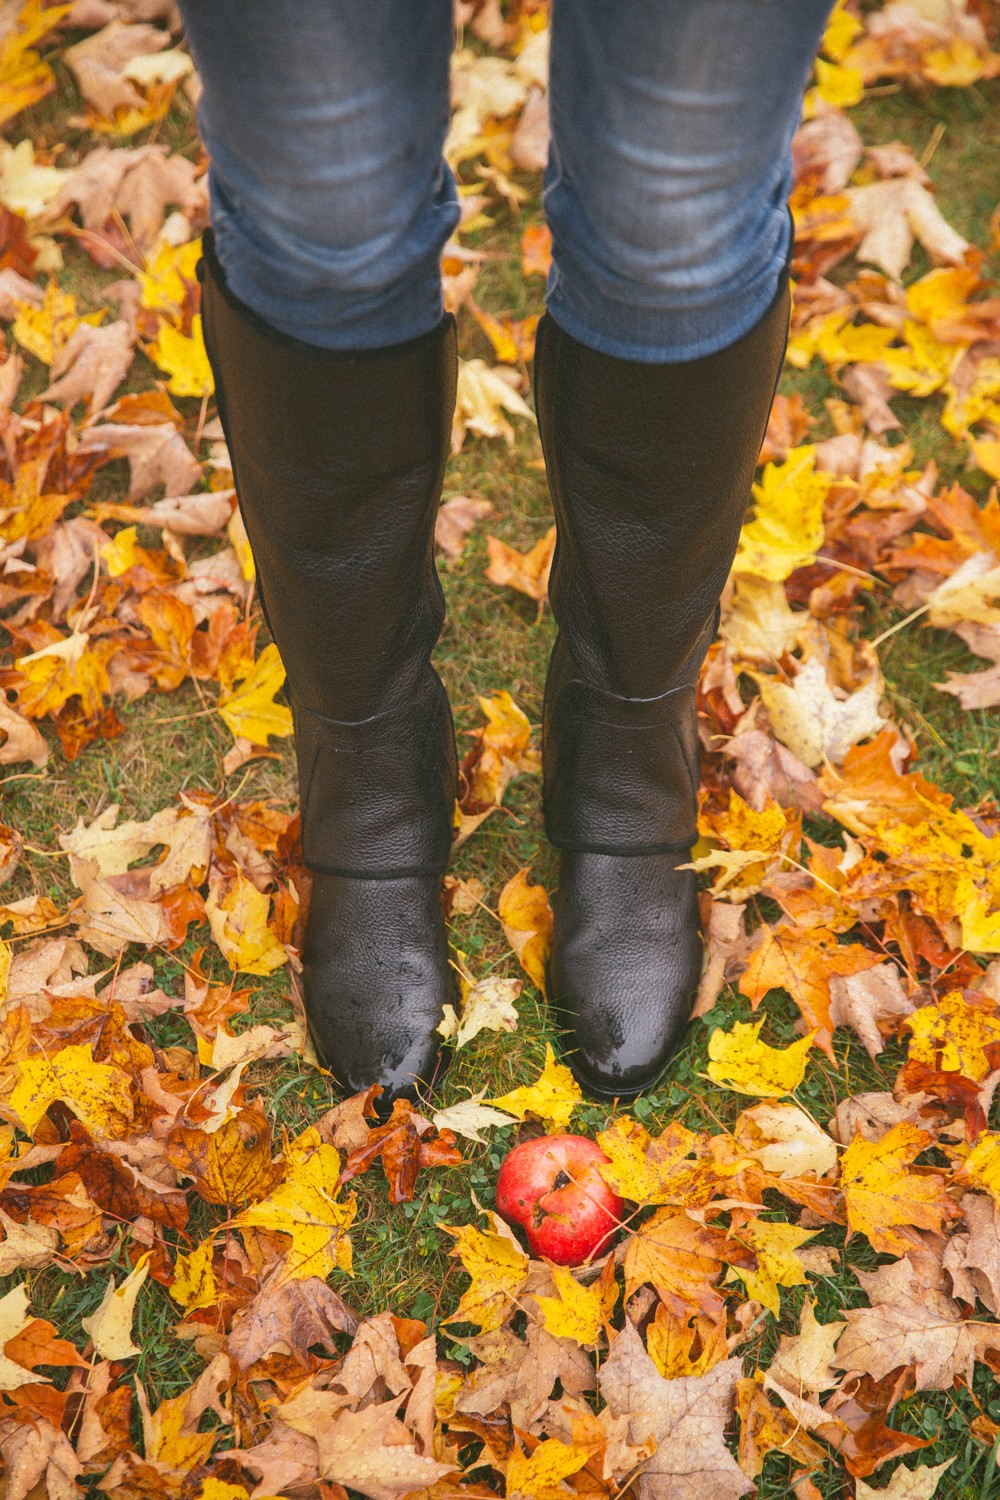 Autumn boots - convert from long to ankle length and back again!